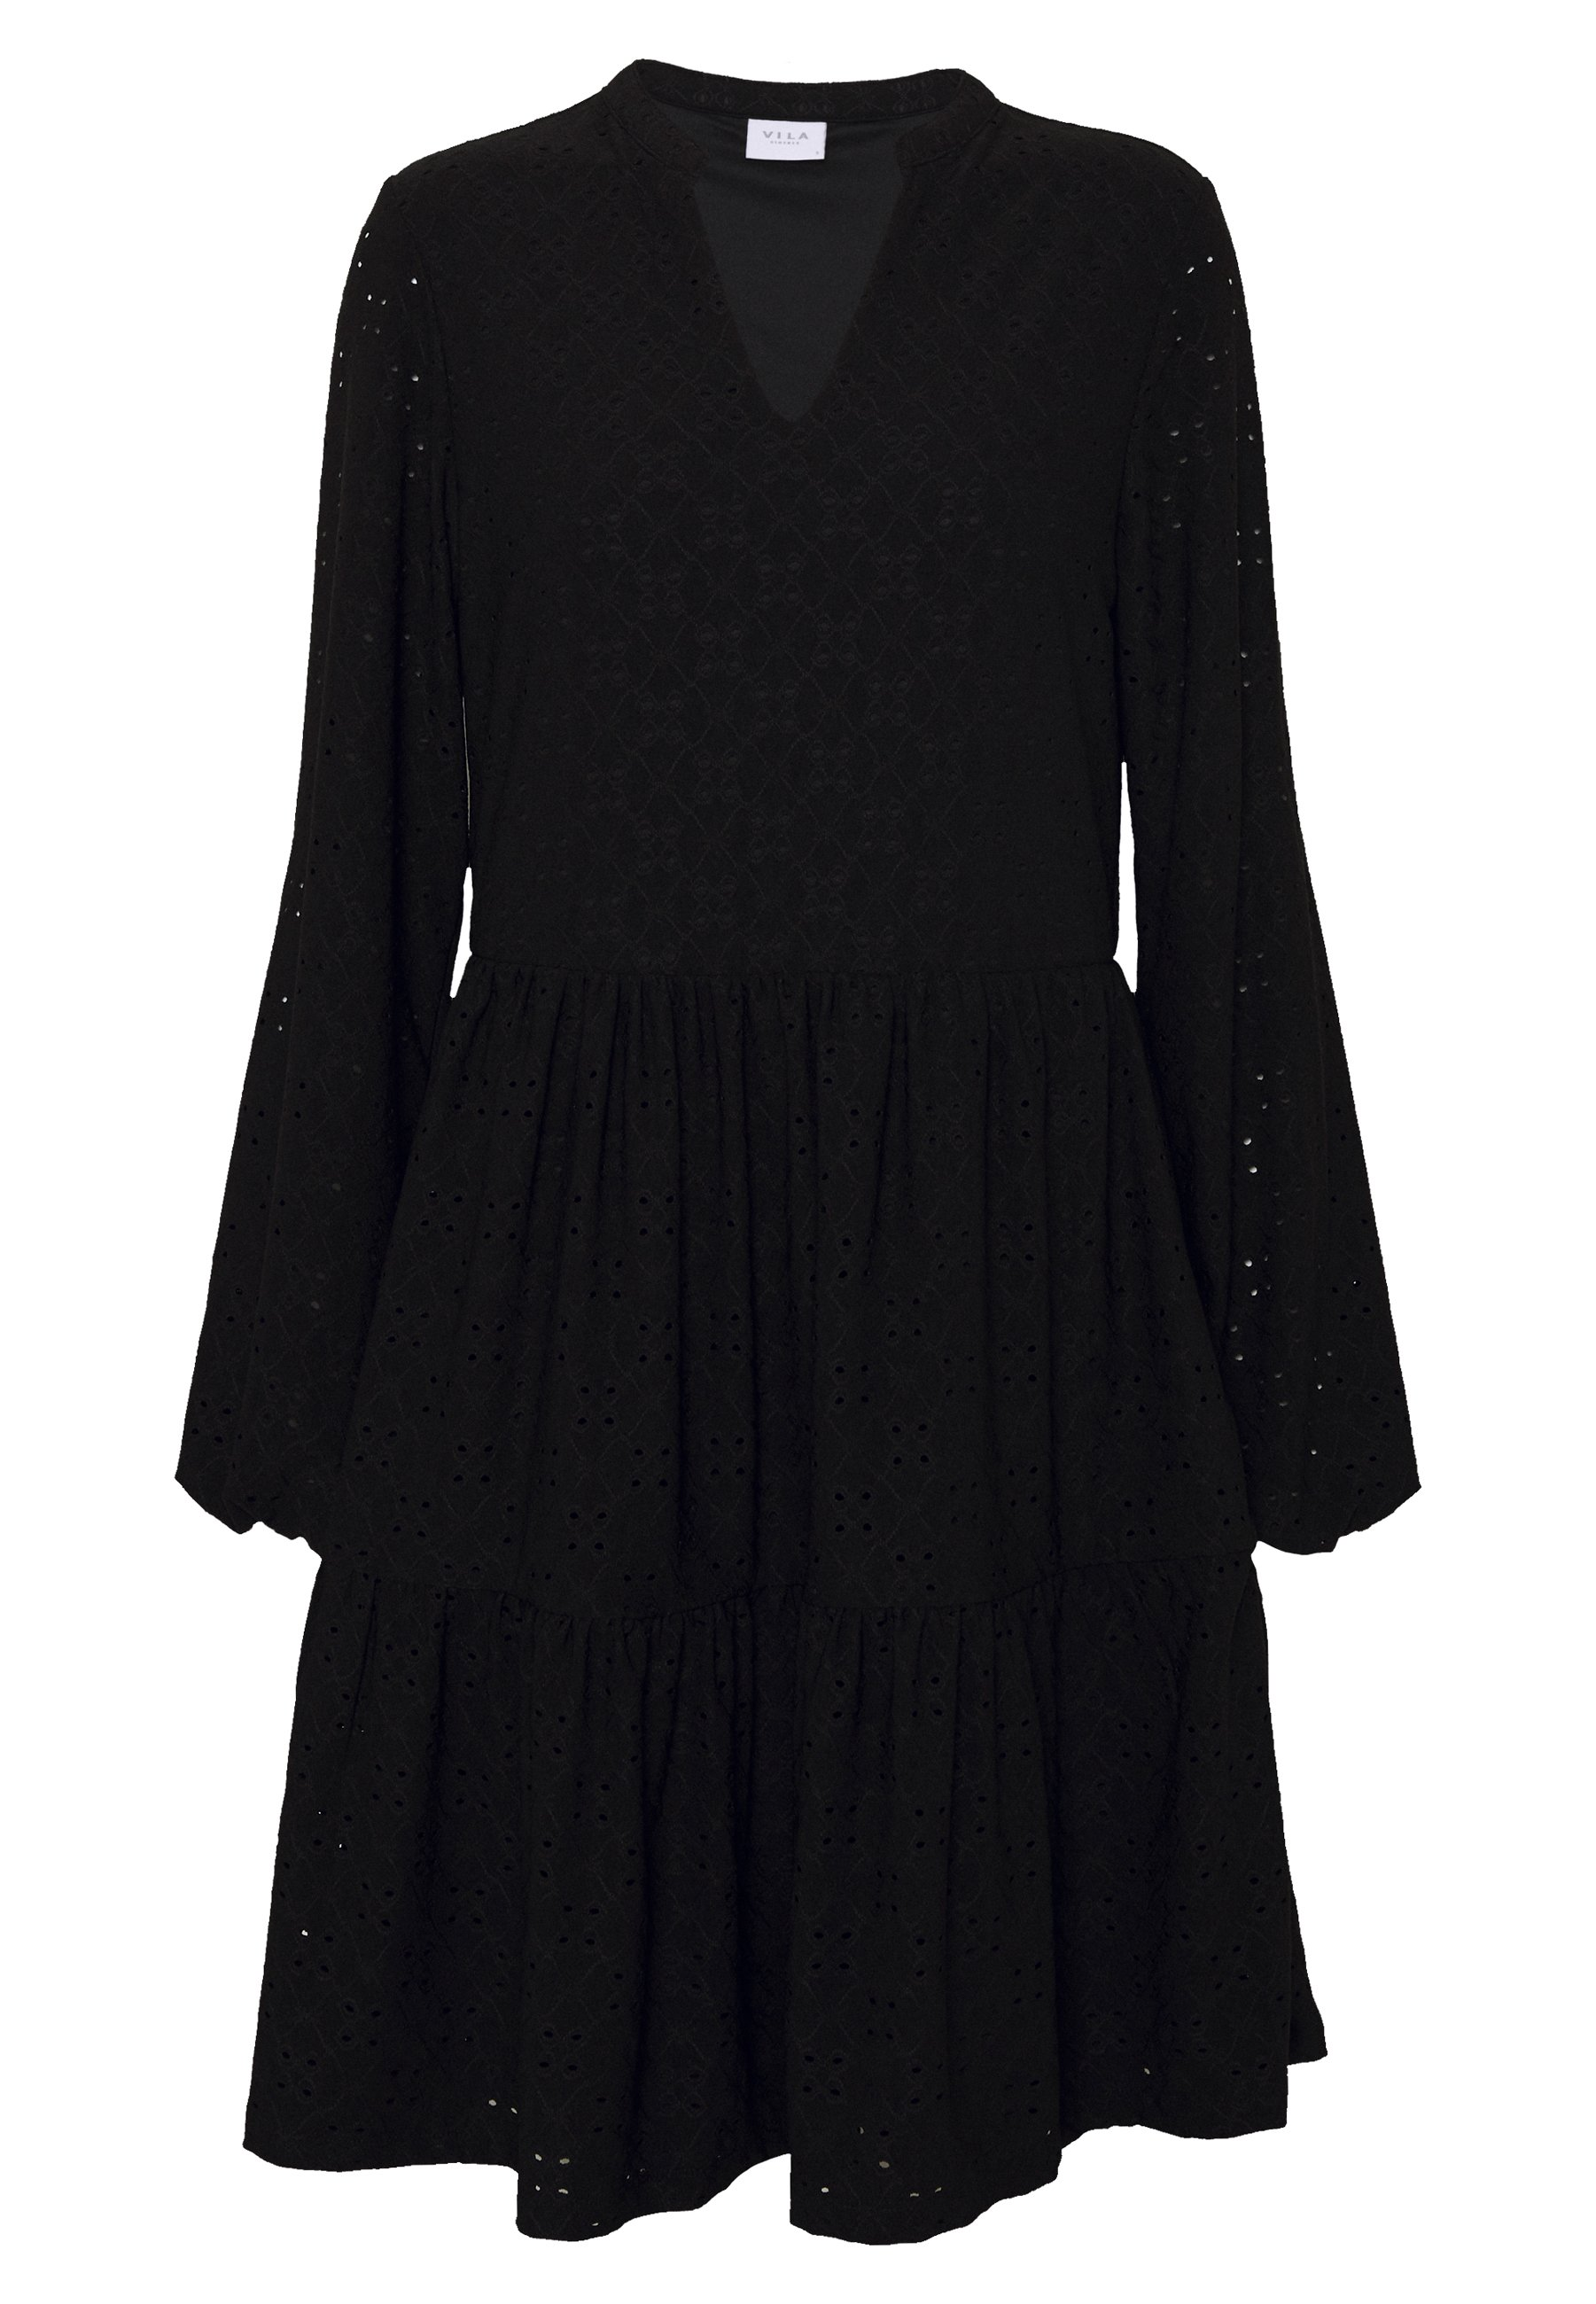 Vila Vikawa Dress - Vardagsklänning Black